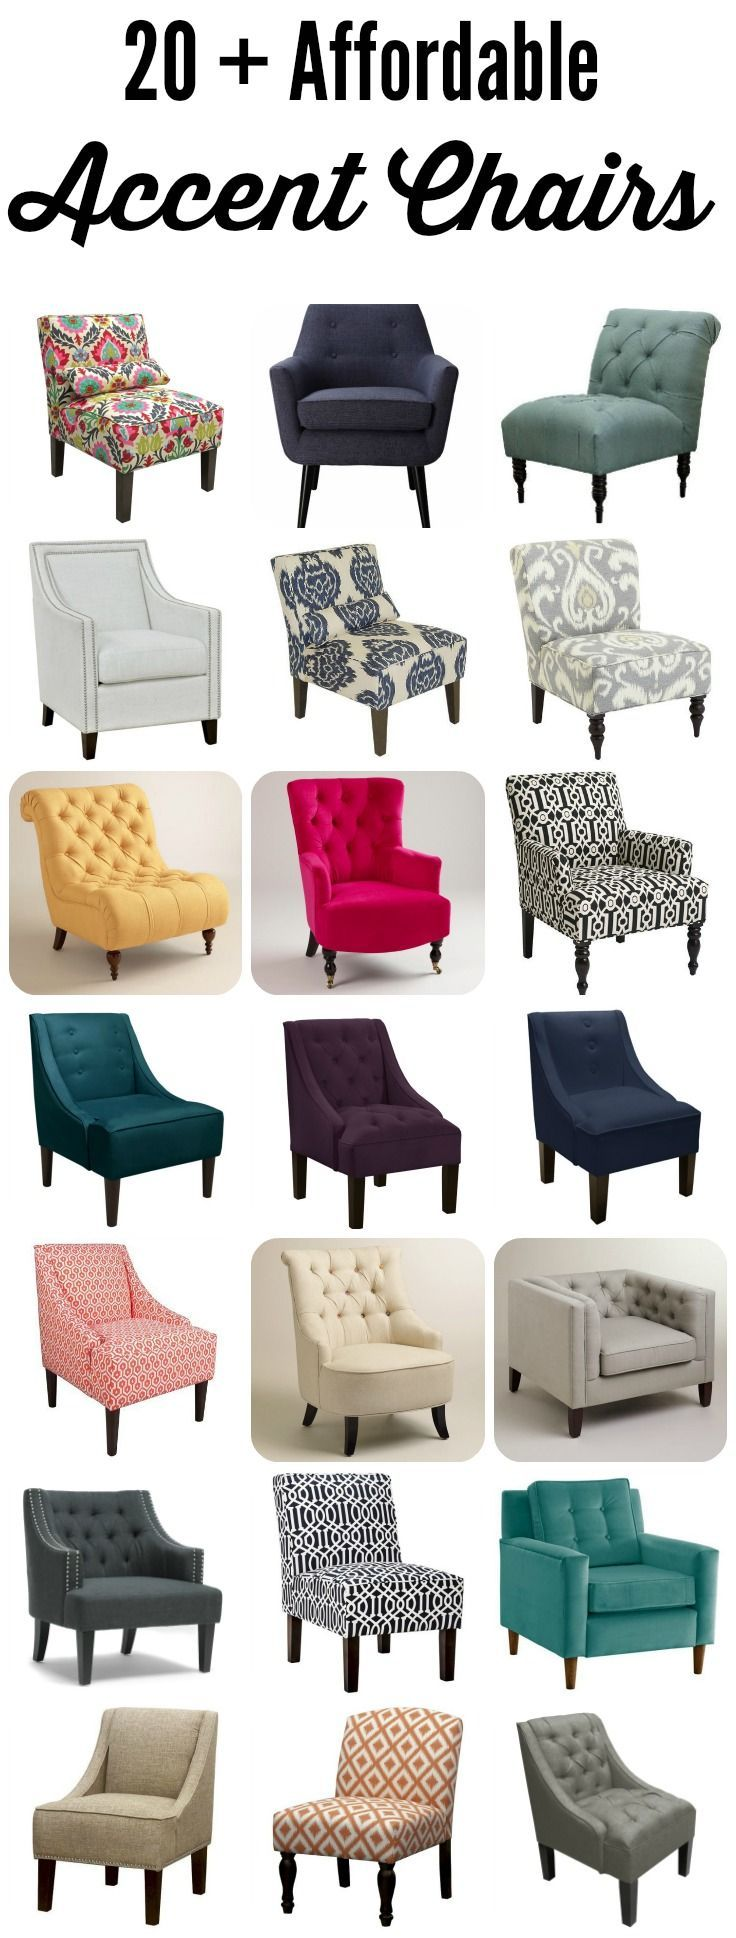 Best Sources for Affordable Accent Chairs | Pinterest | Room, Living ...